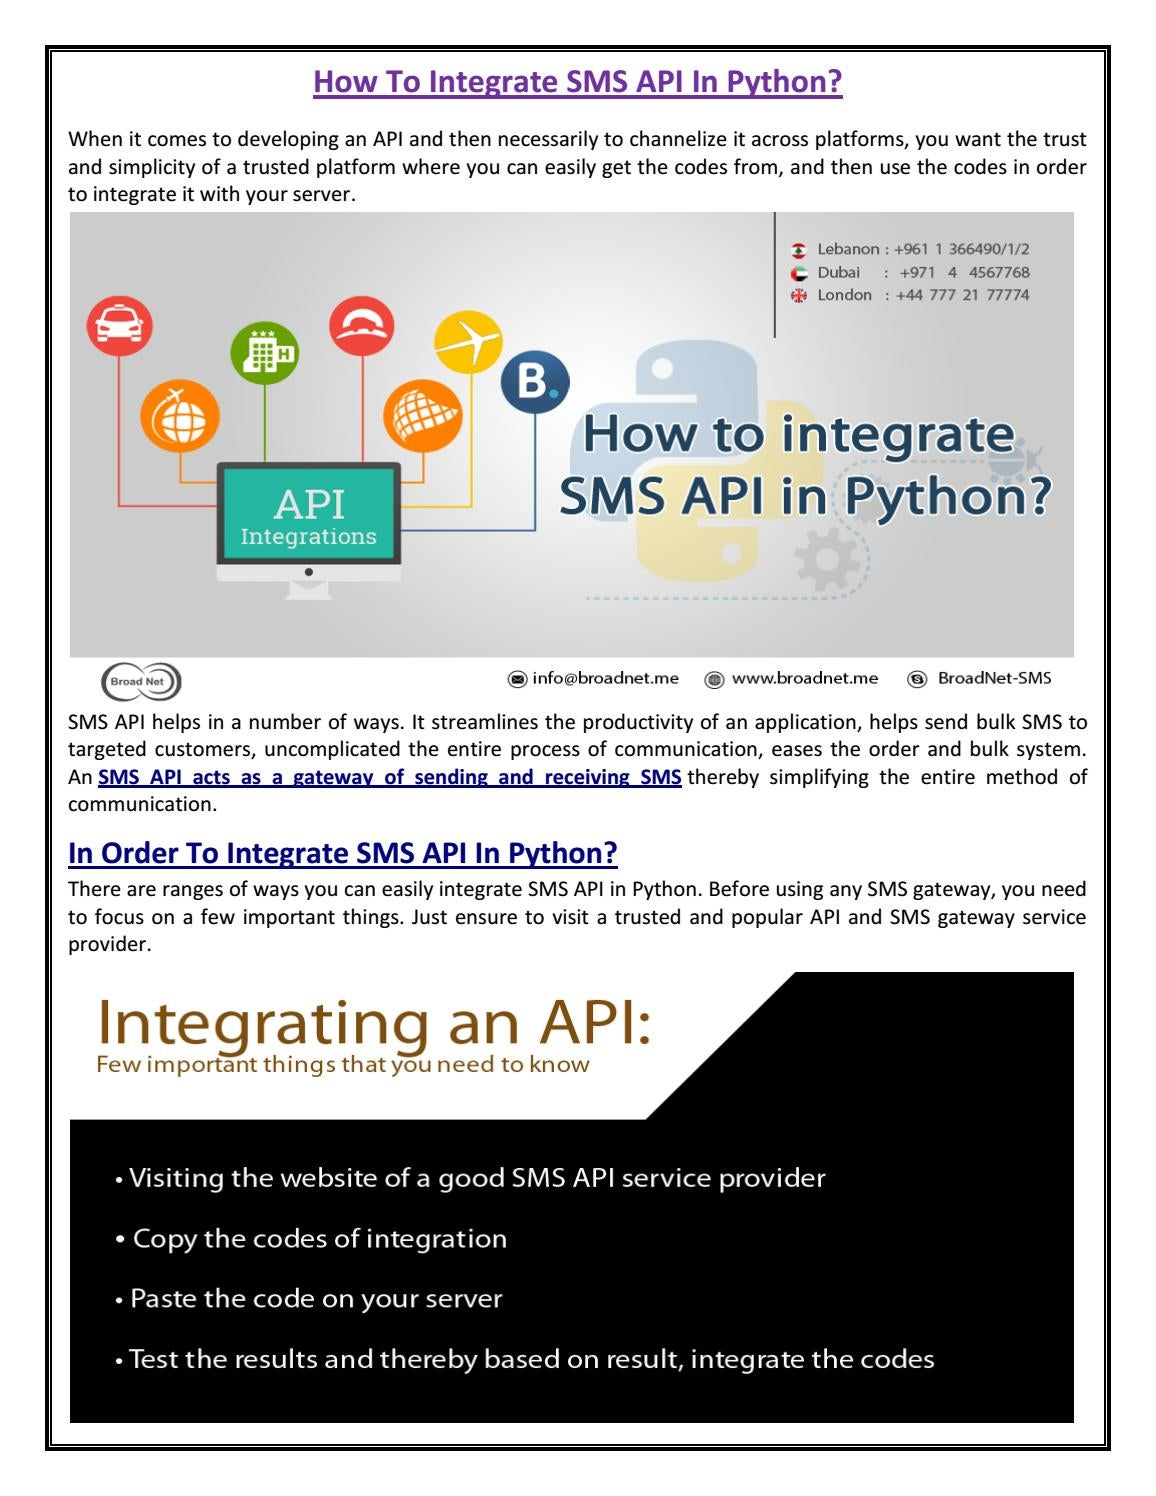 How to integrate sms api in python by BroadNet Technologies